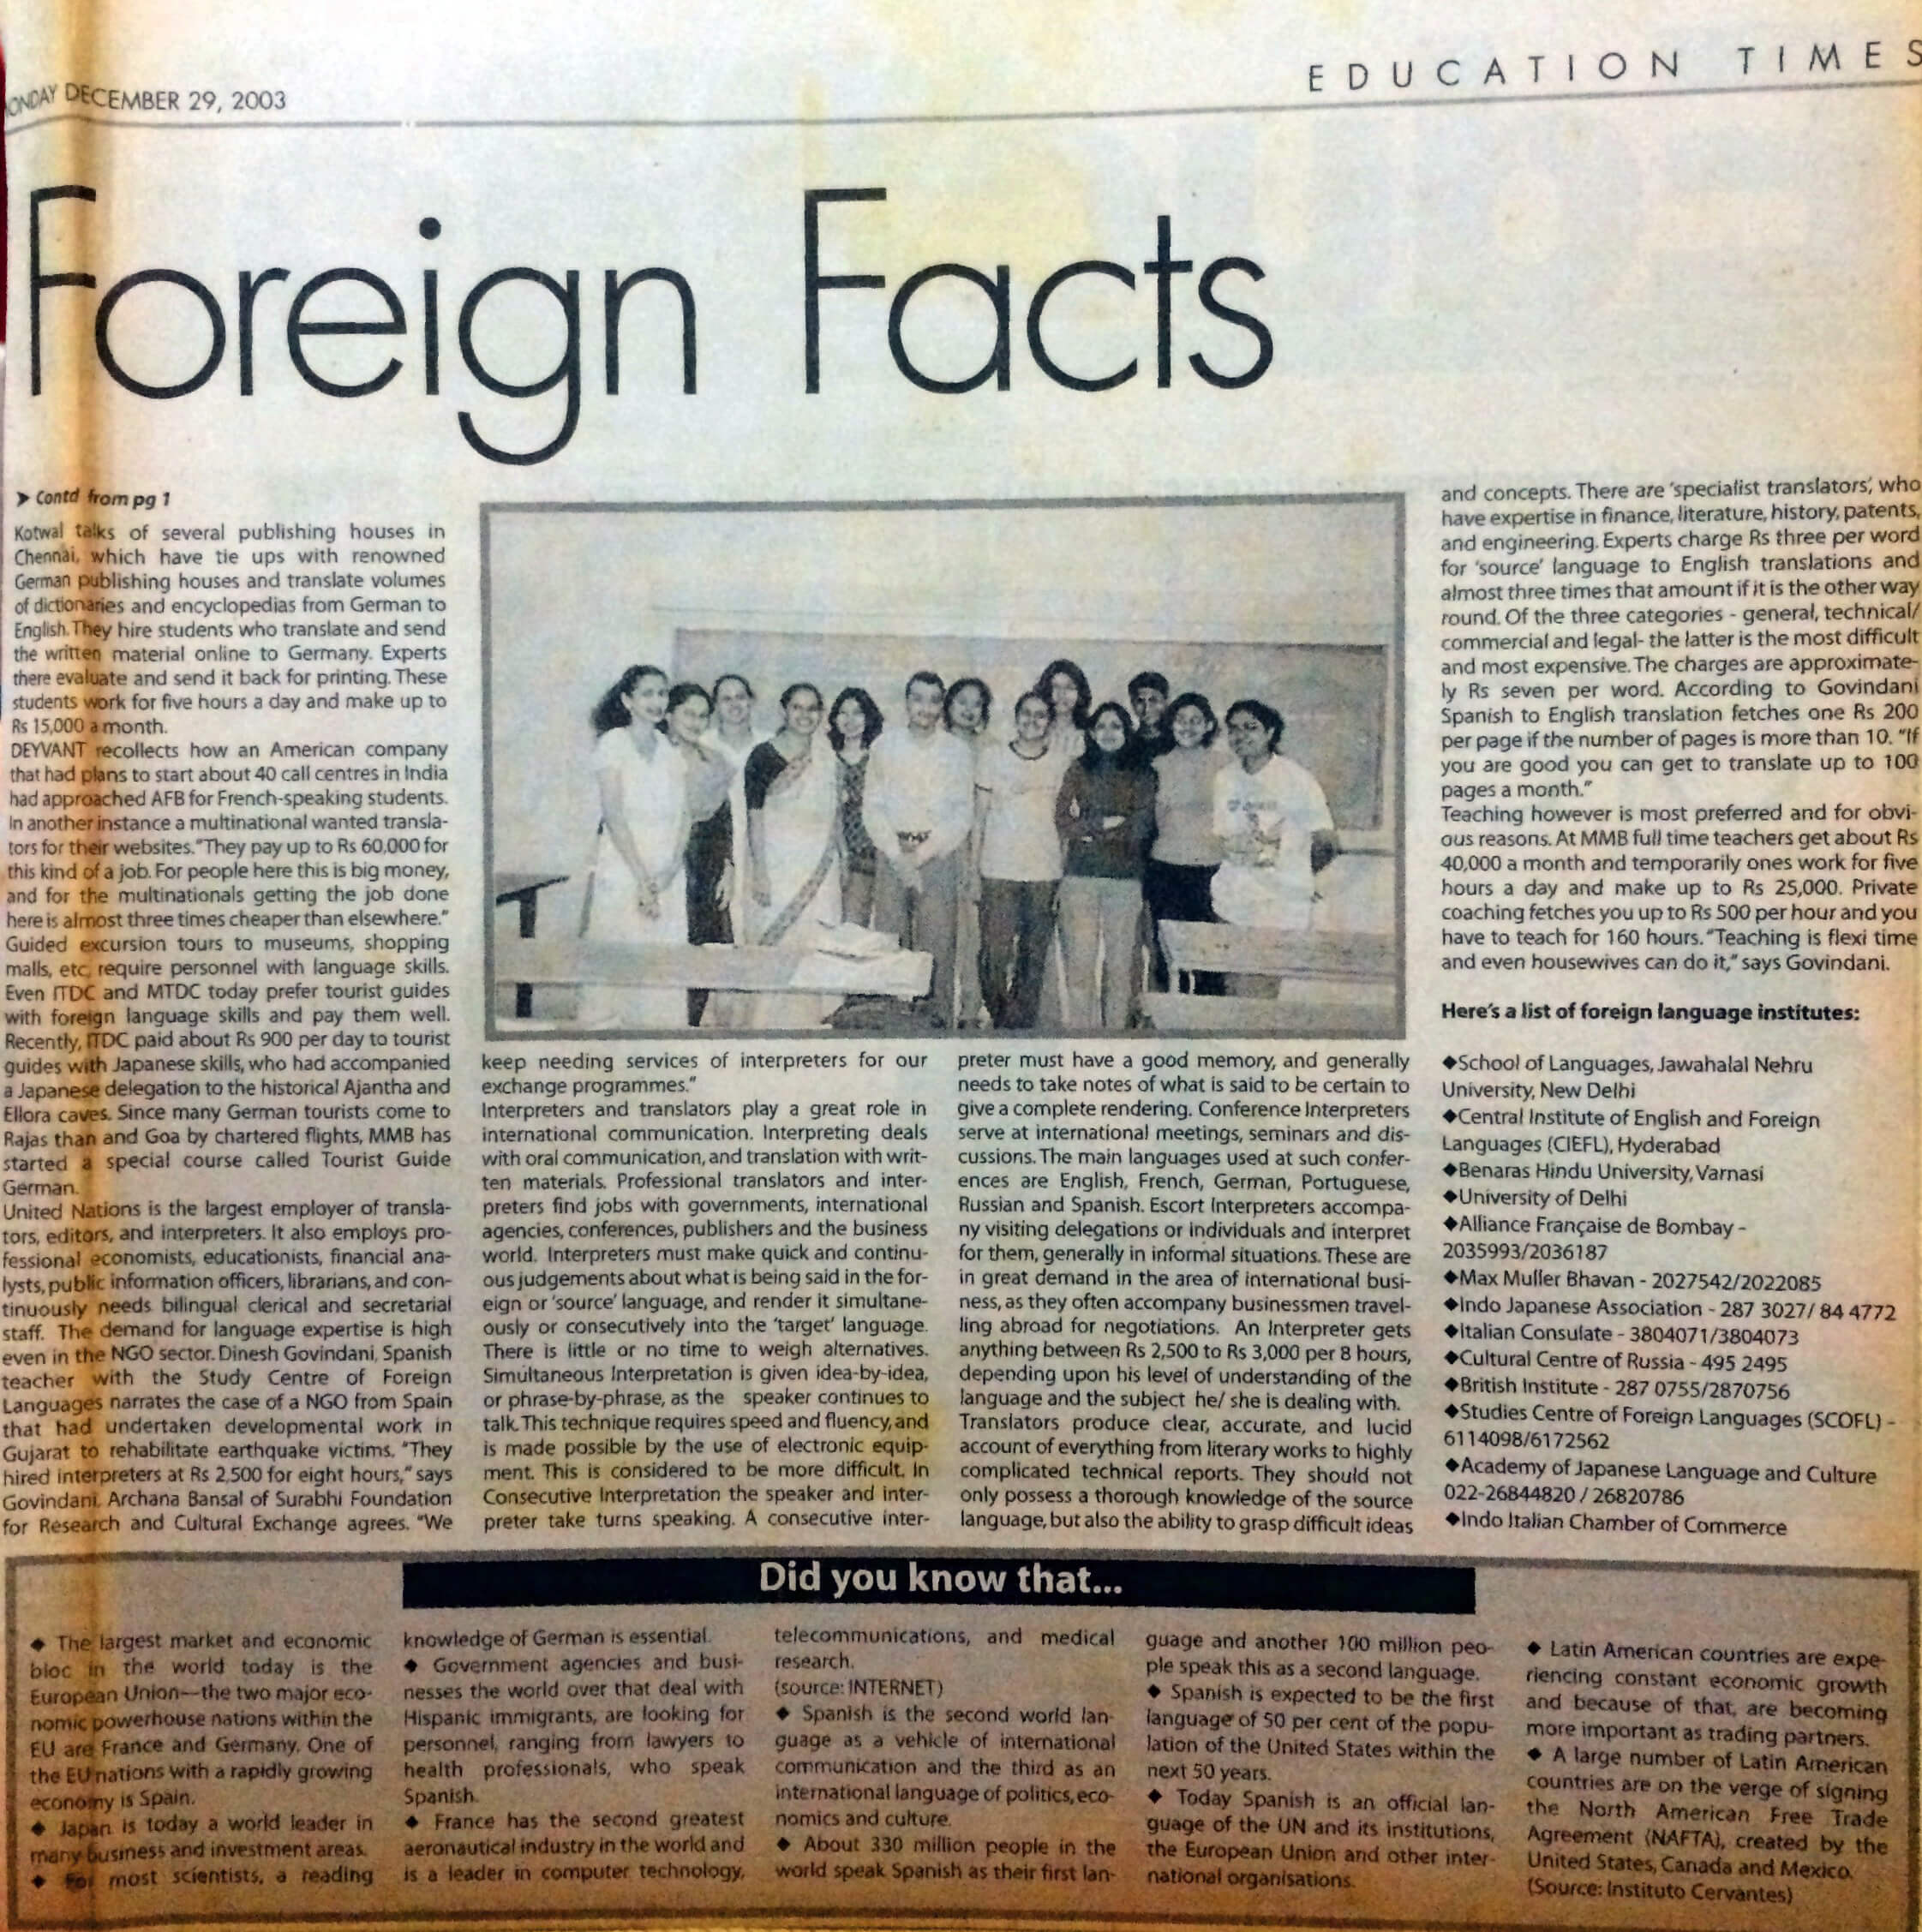 Education Times - Foreign Facts